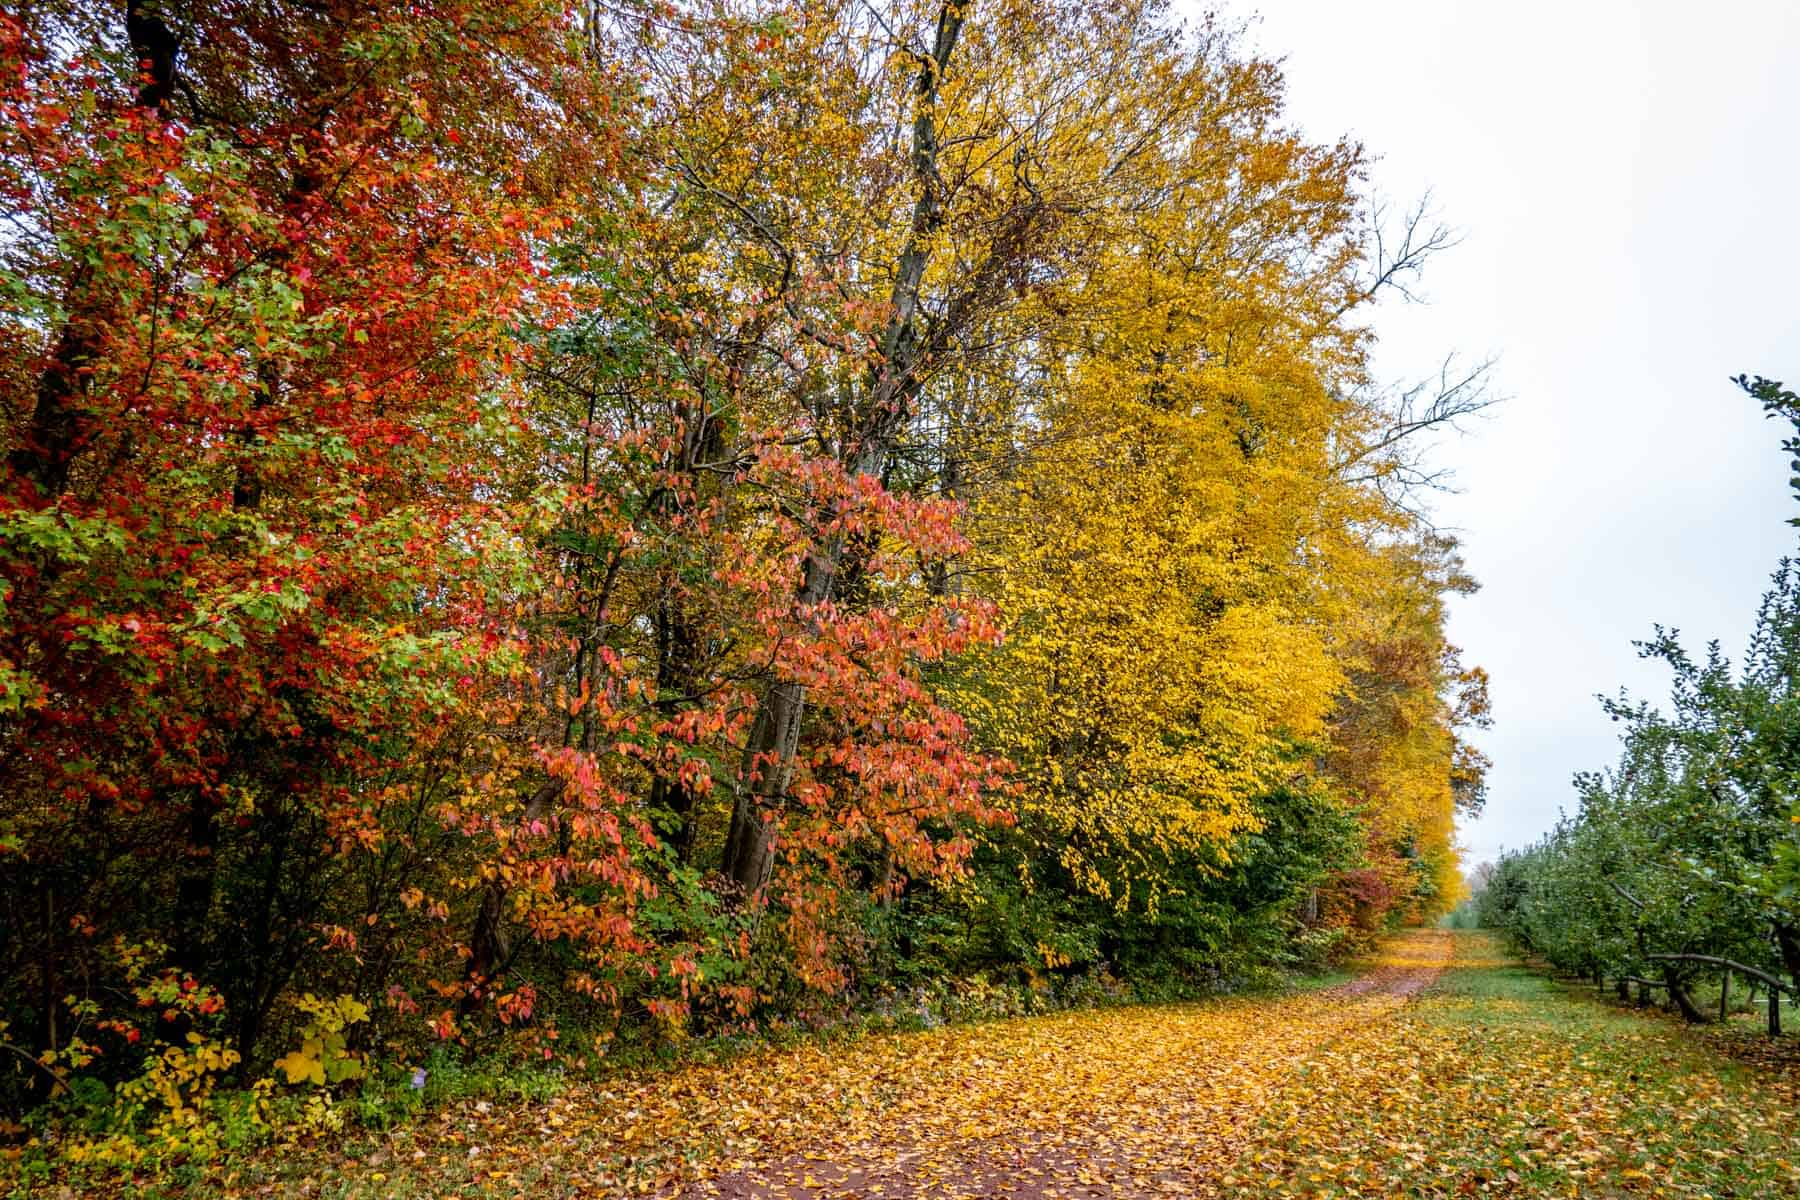 A path between a row of apple trees and a row of trees in bright fall colors